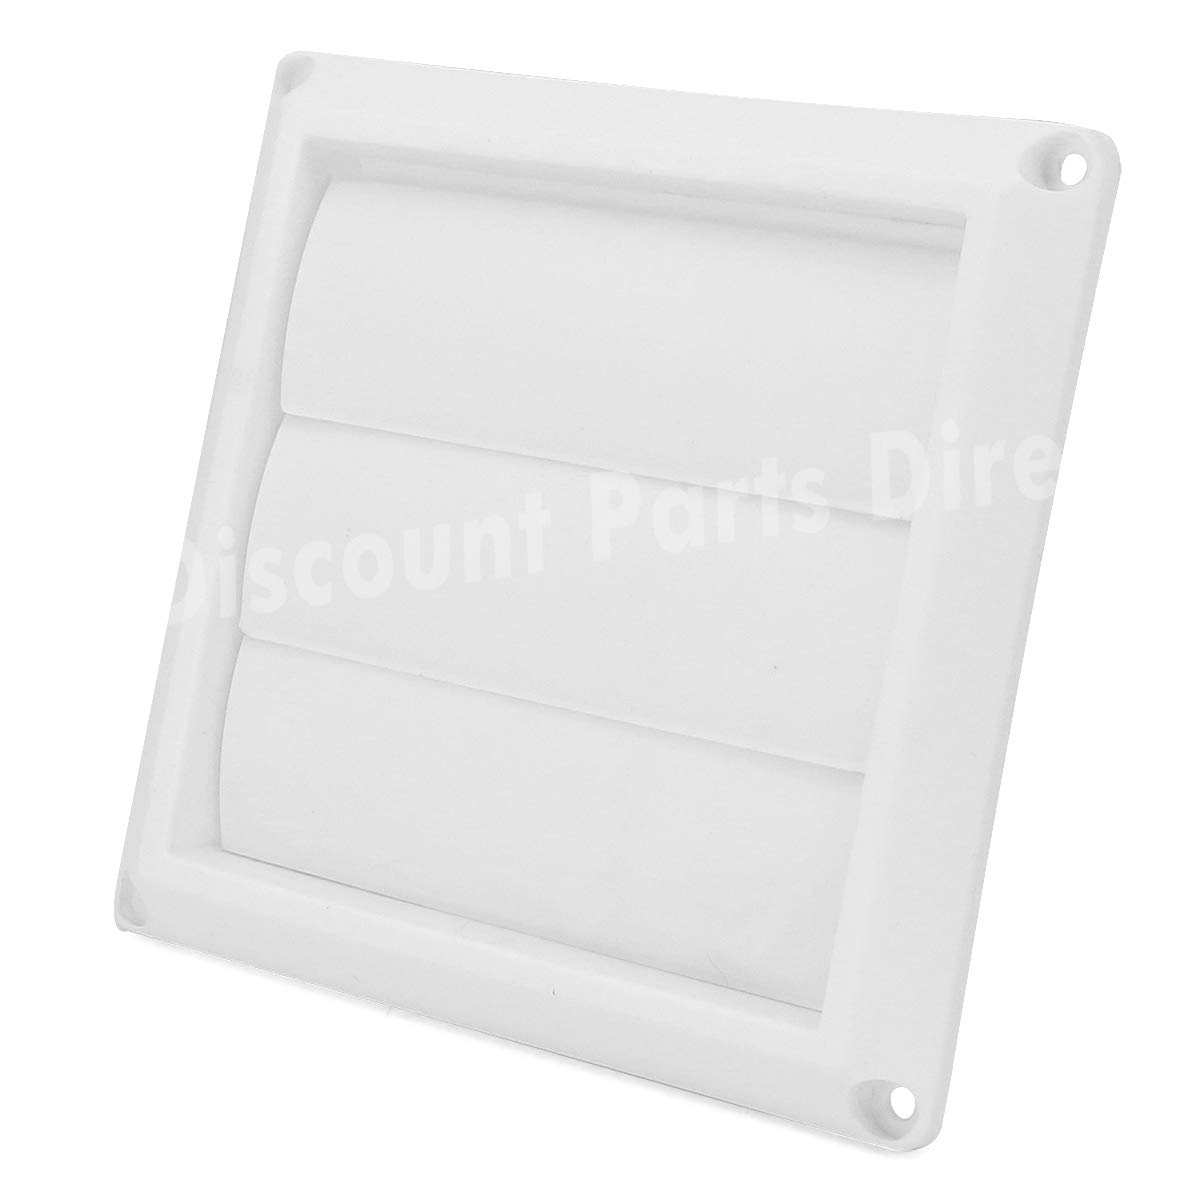 Outdoor Dryer Air Vent Cover Cap 4 Louvered Cover White Exterior Wall Vent Hood Outlet Airflow Vent